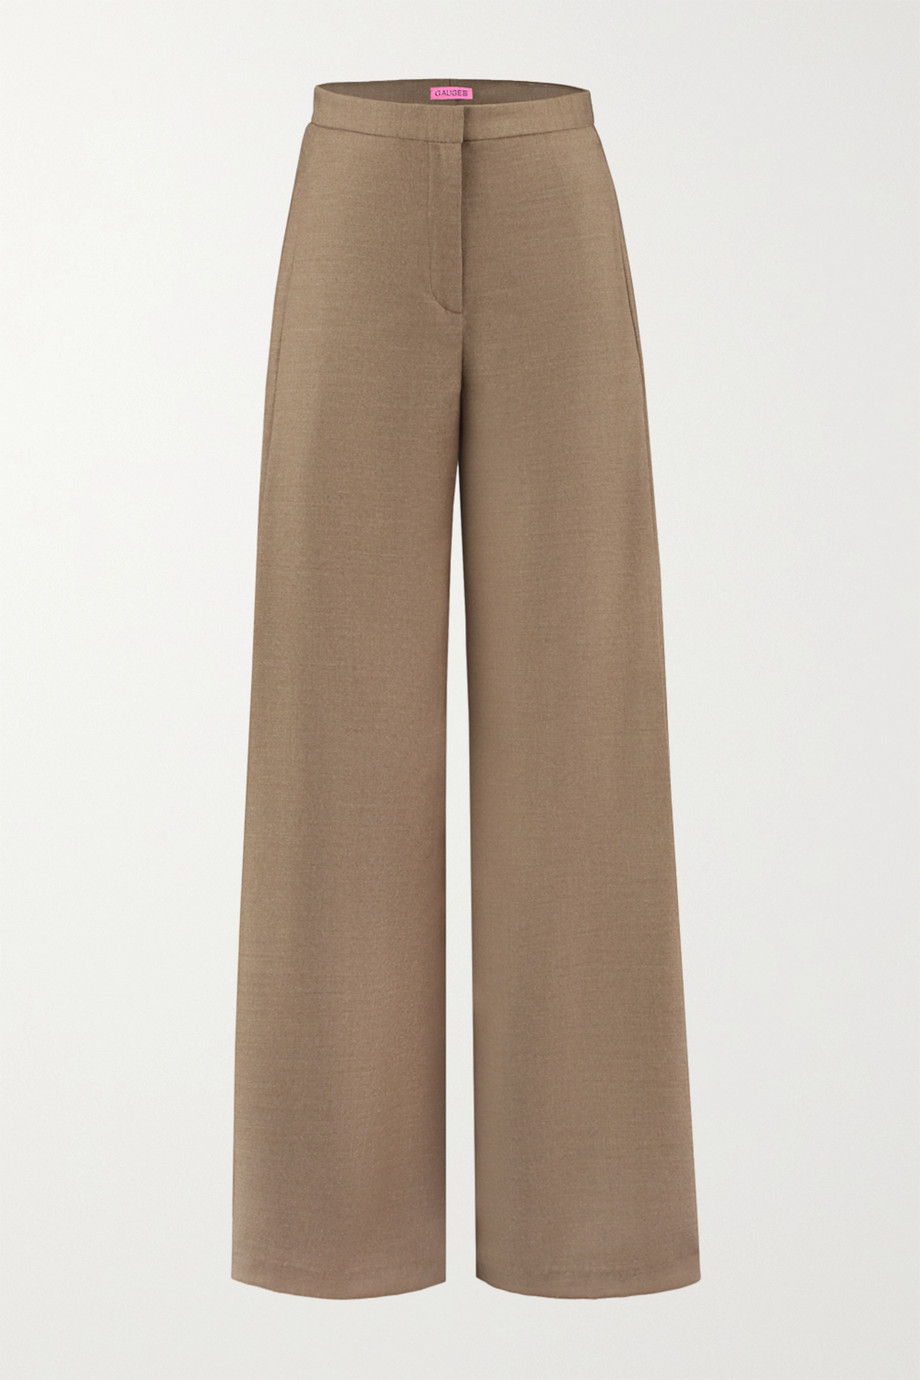 GAUGE81 Colima wool and cashmere-blend wide-leg pants